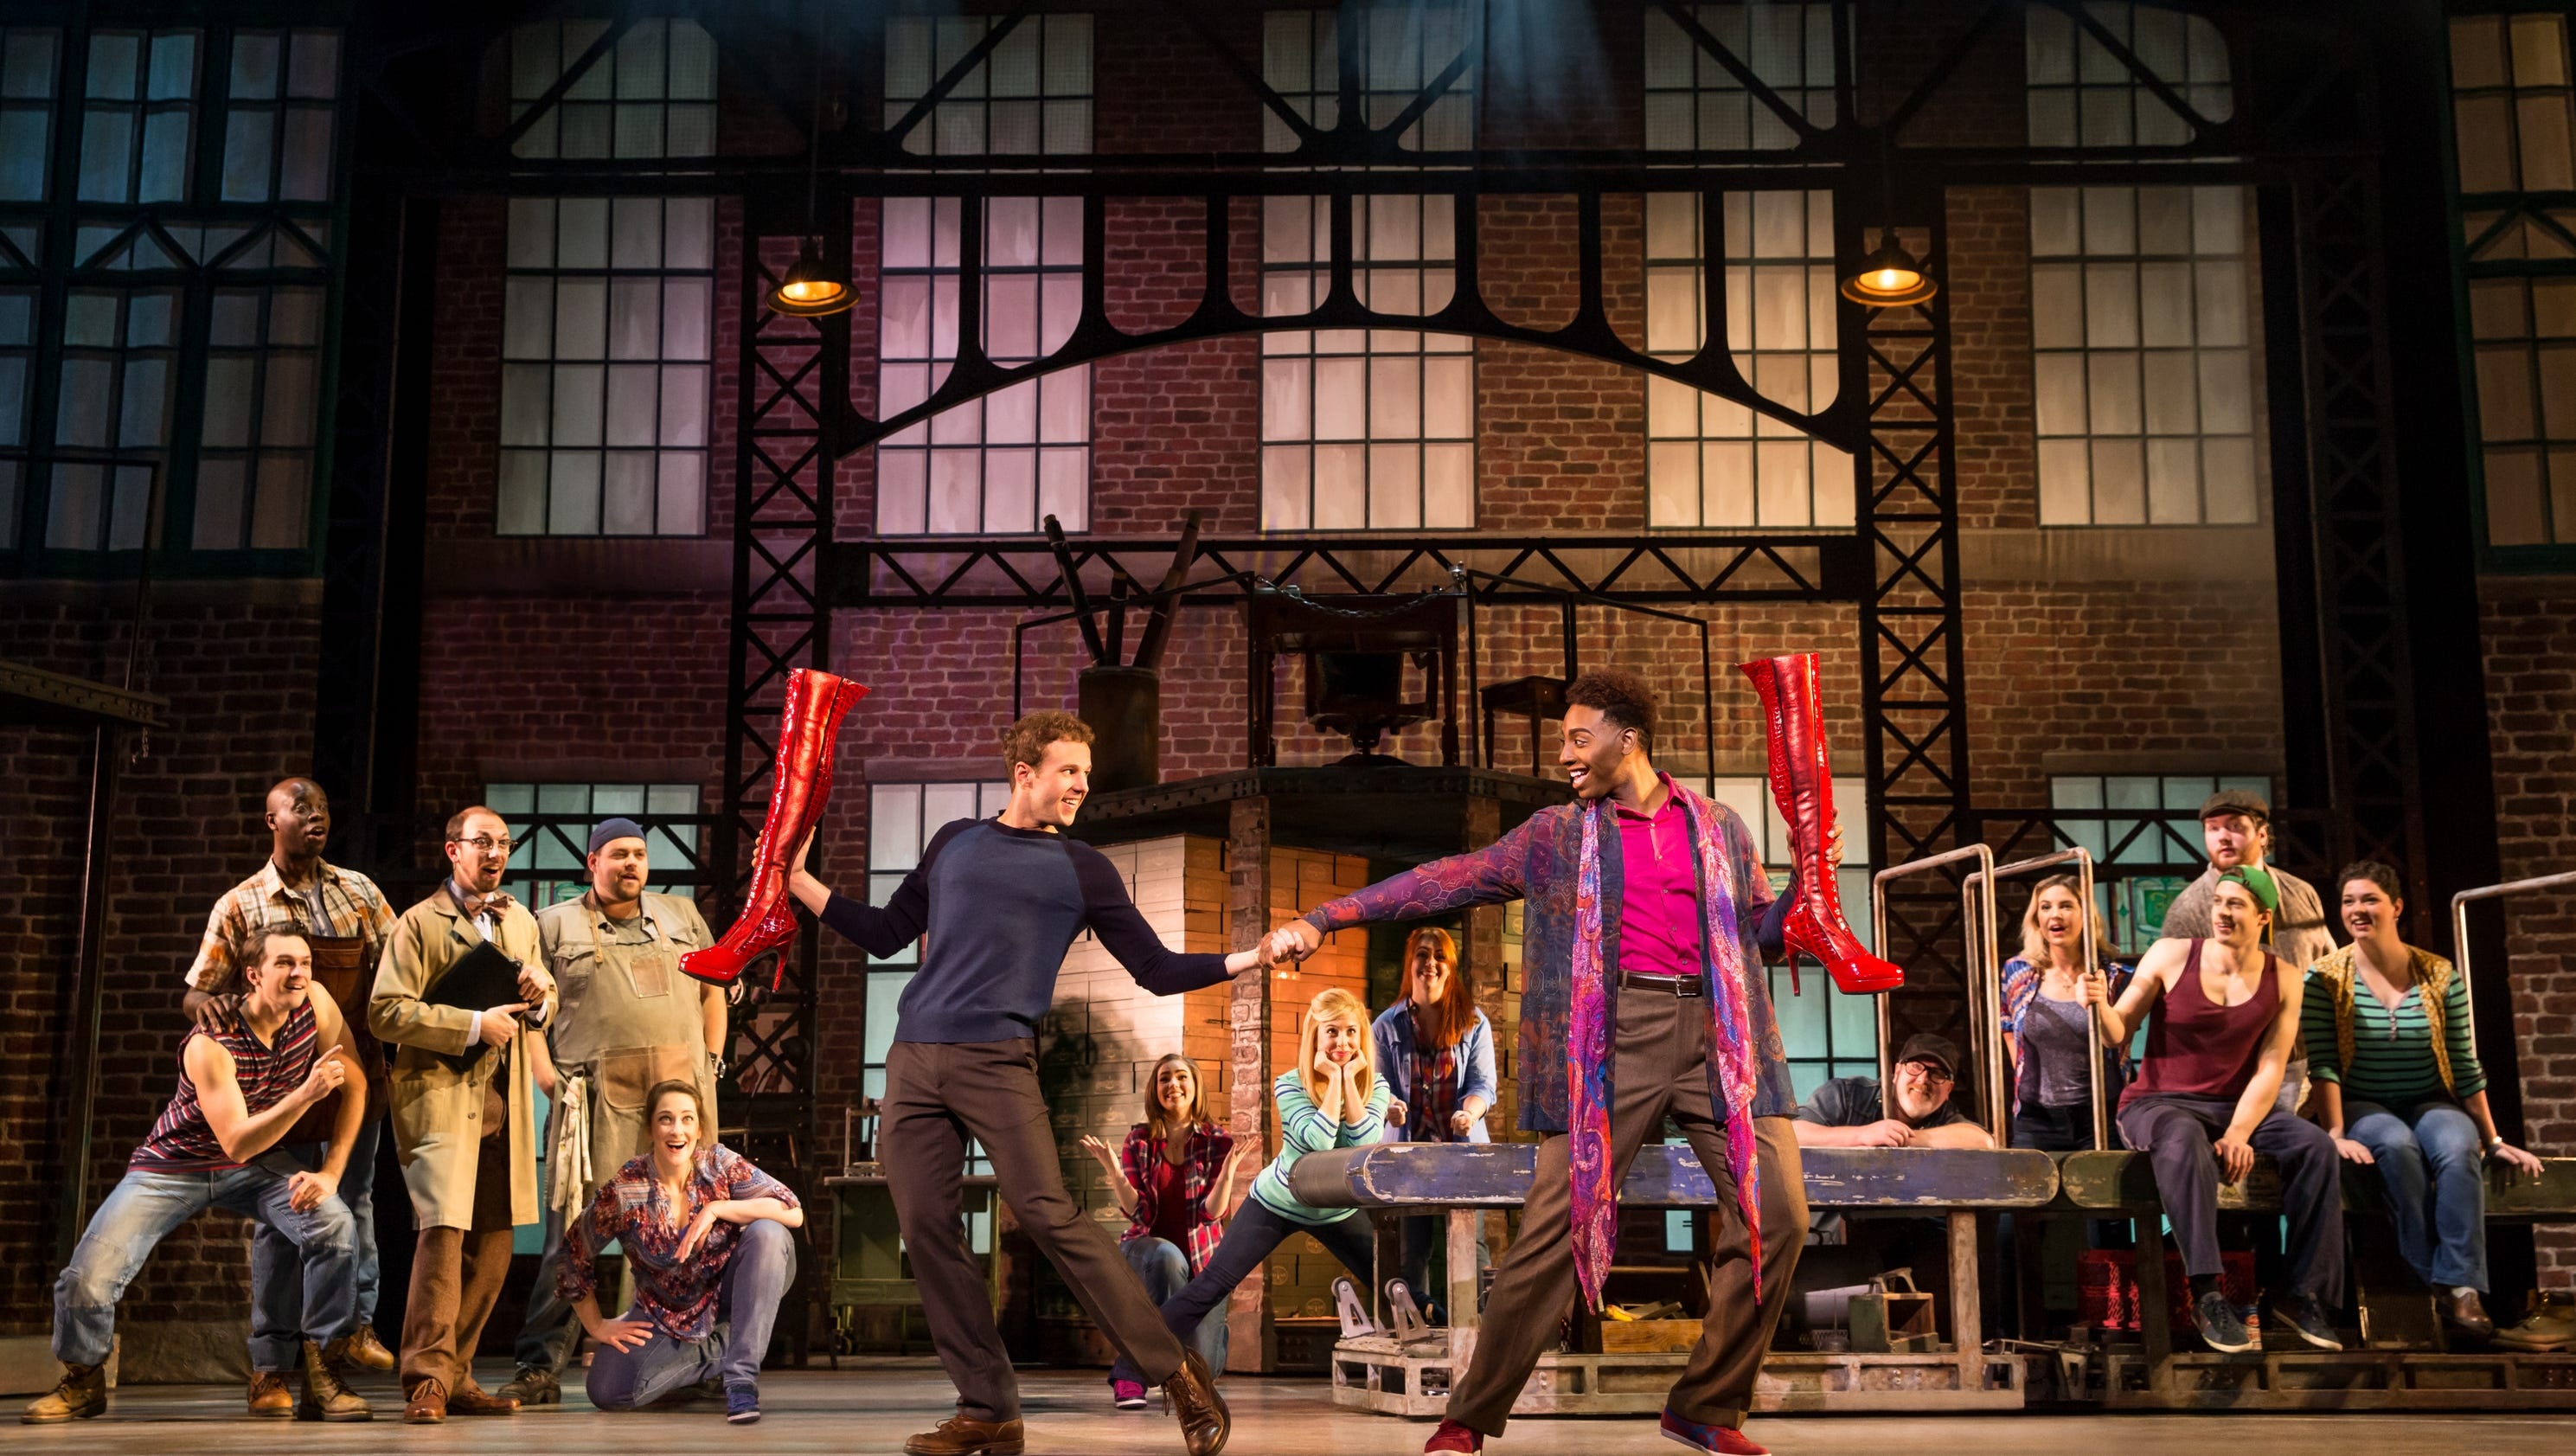 Cyndi Lauper Musical 'Kinky Boots' Comes To The Forum